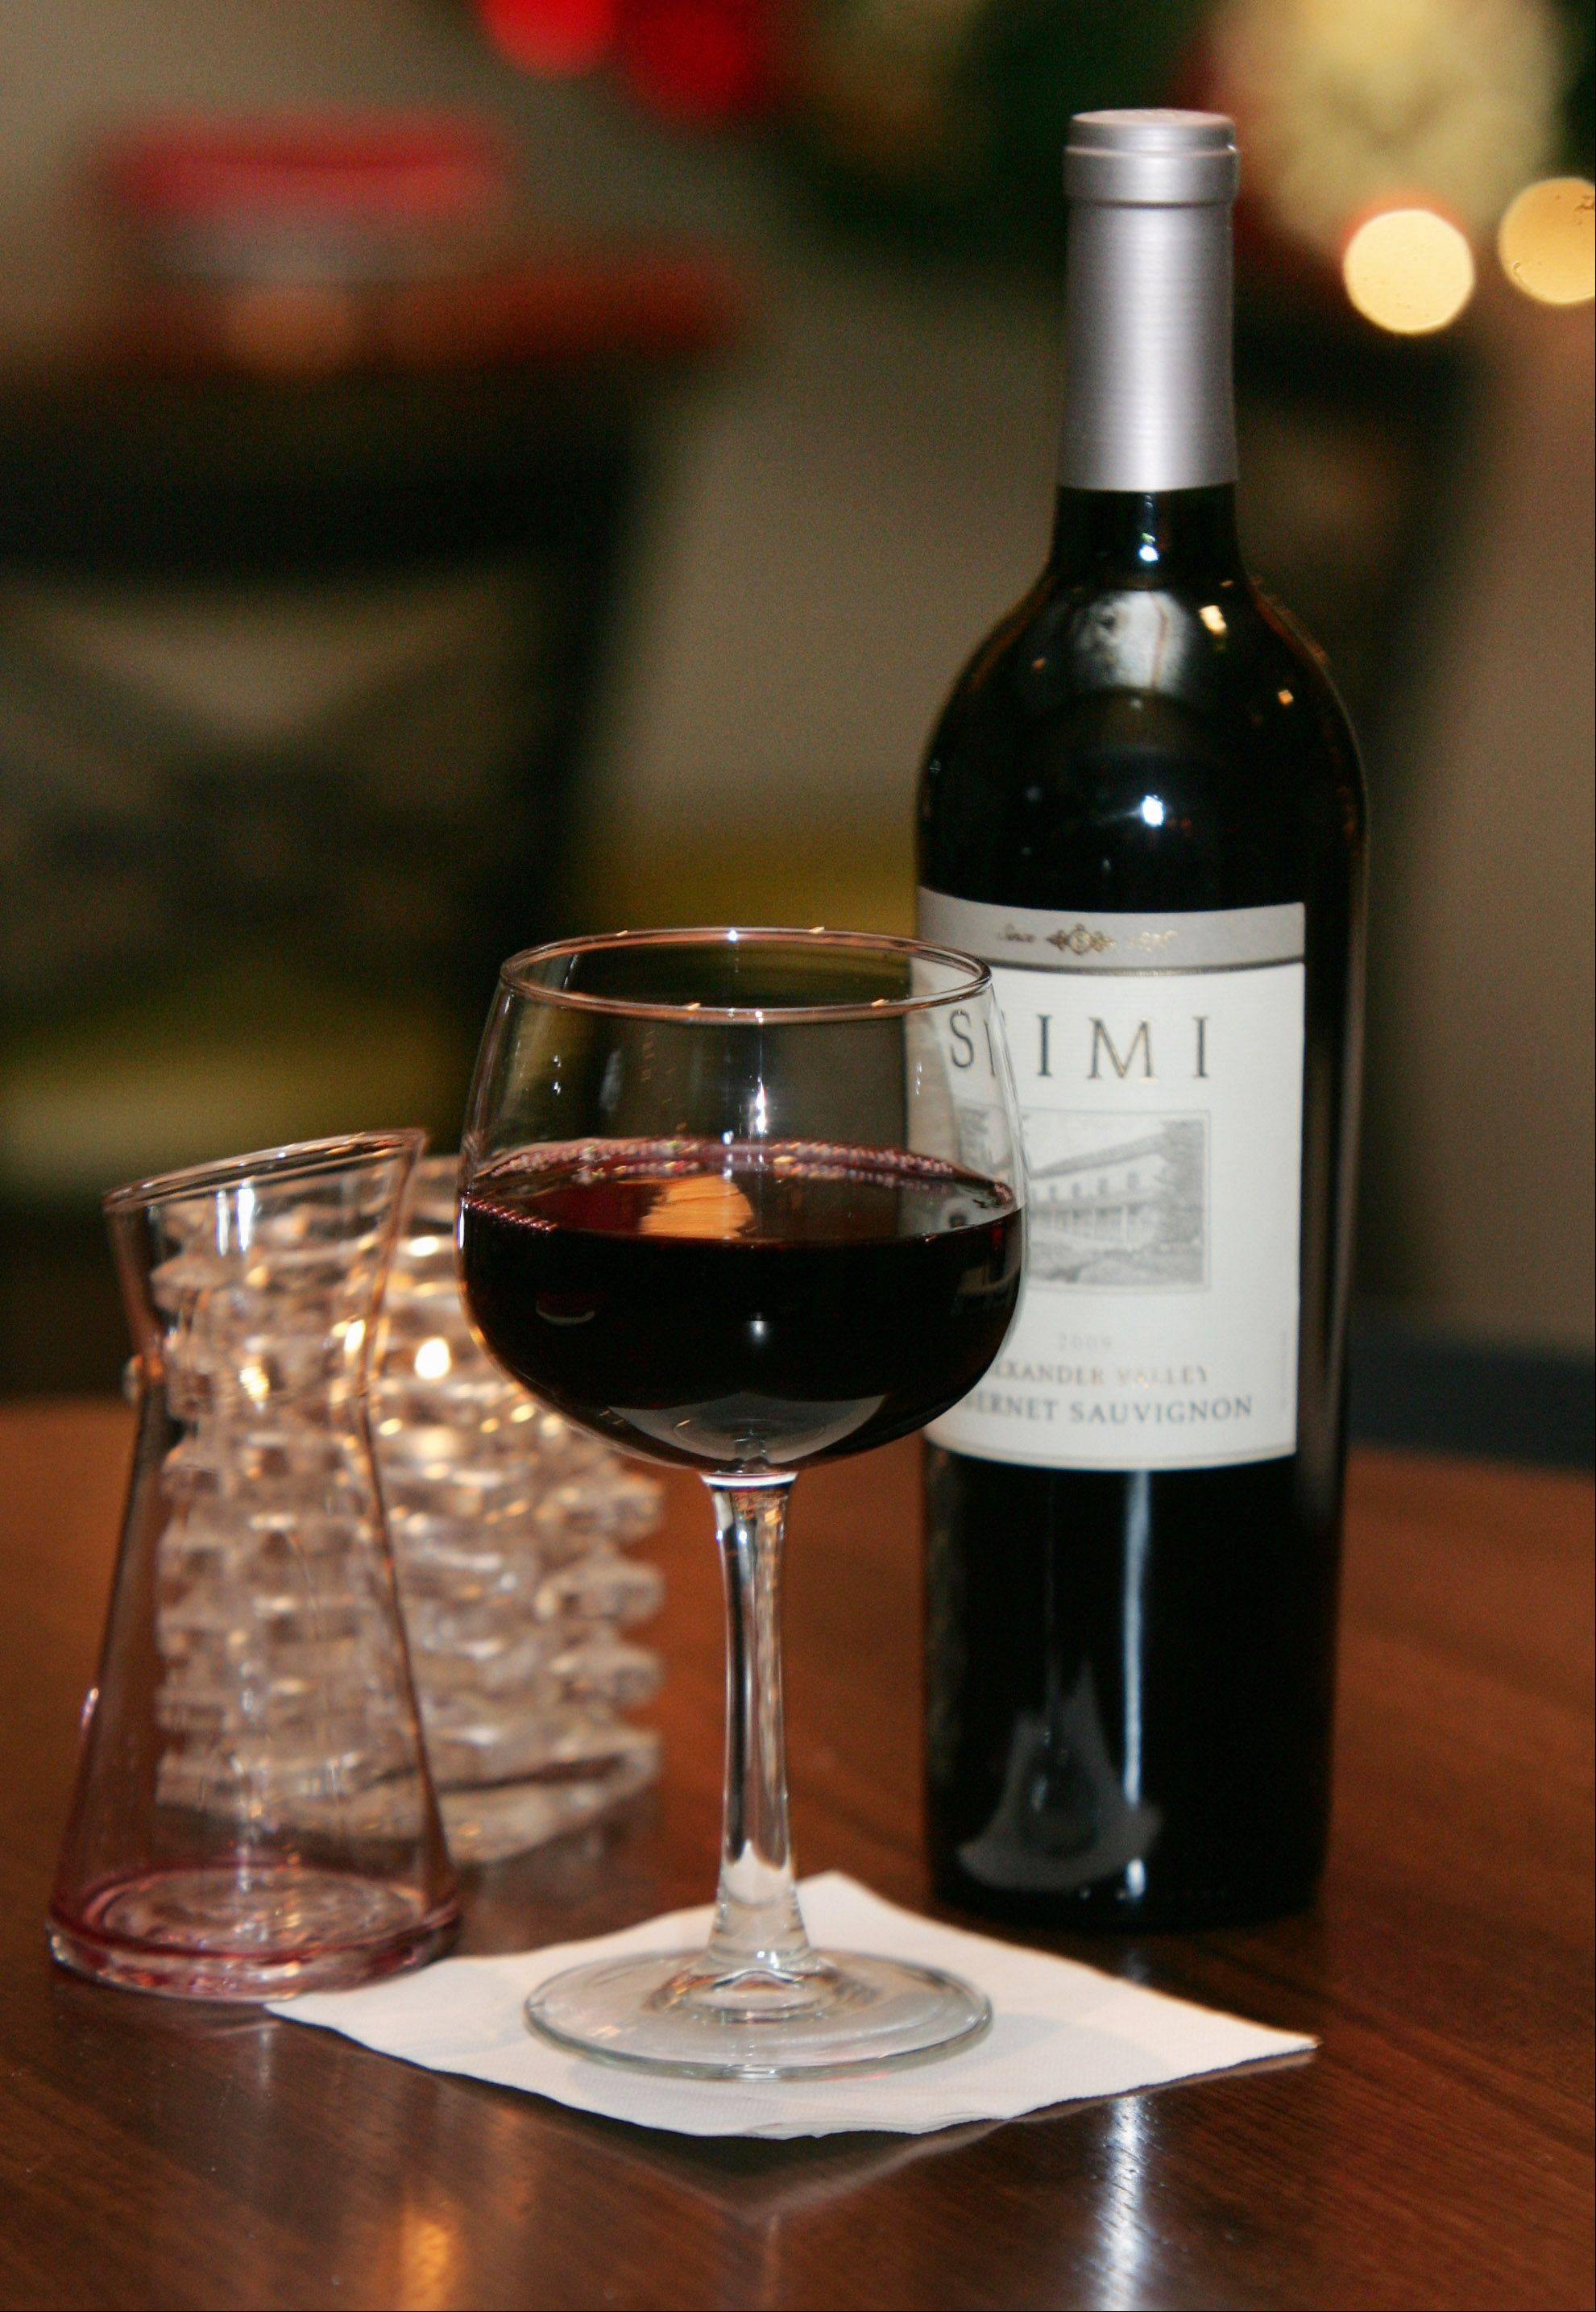 Wine is available by the bottle, glass or in flights at Bodega Grill & Wine Lounge in Gurnee.